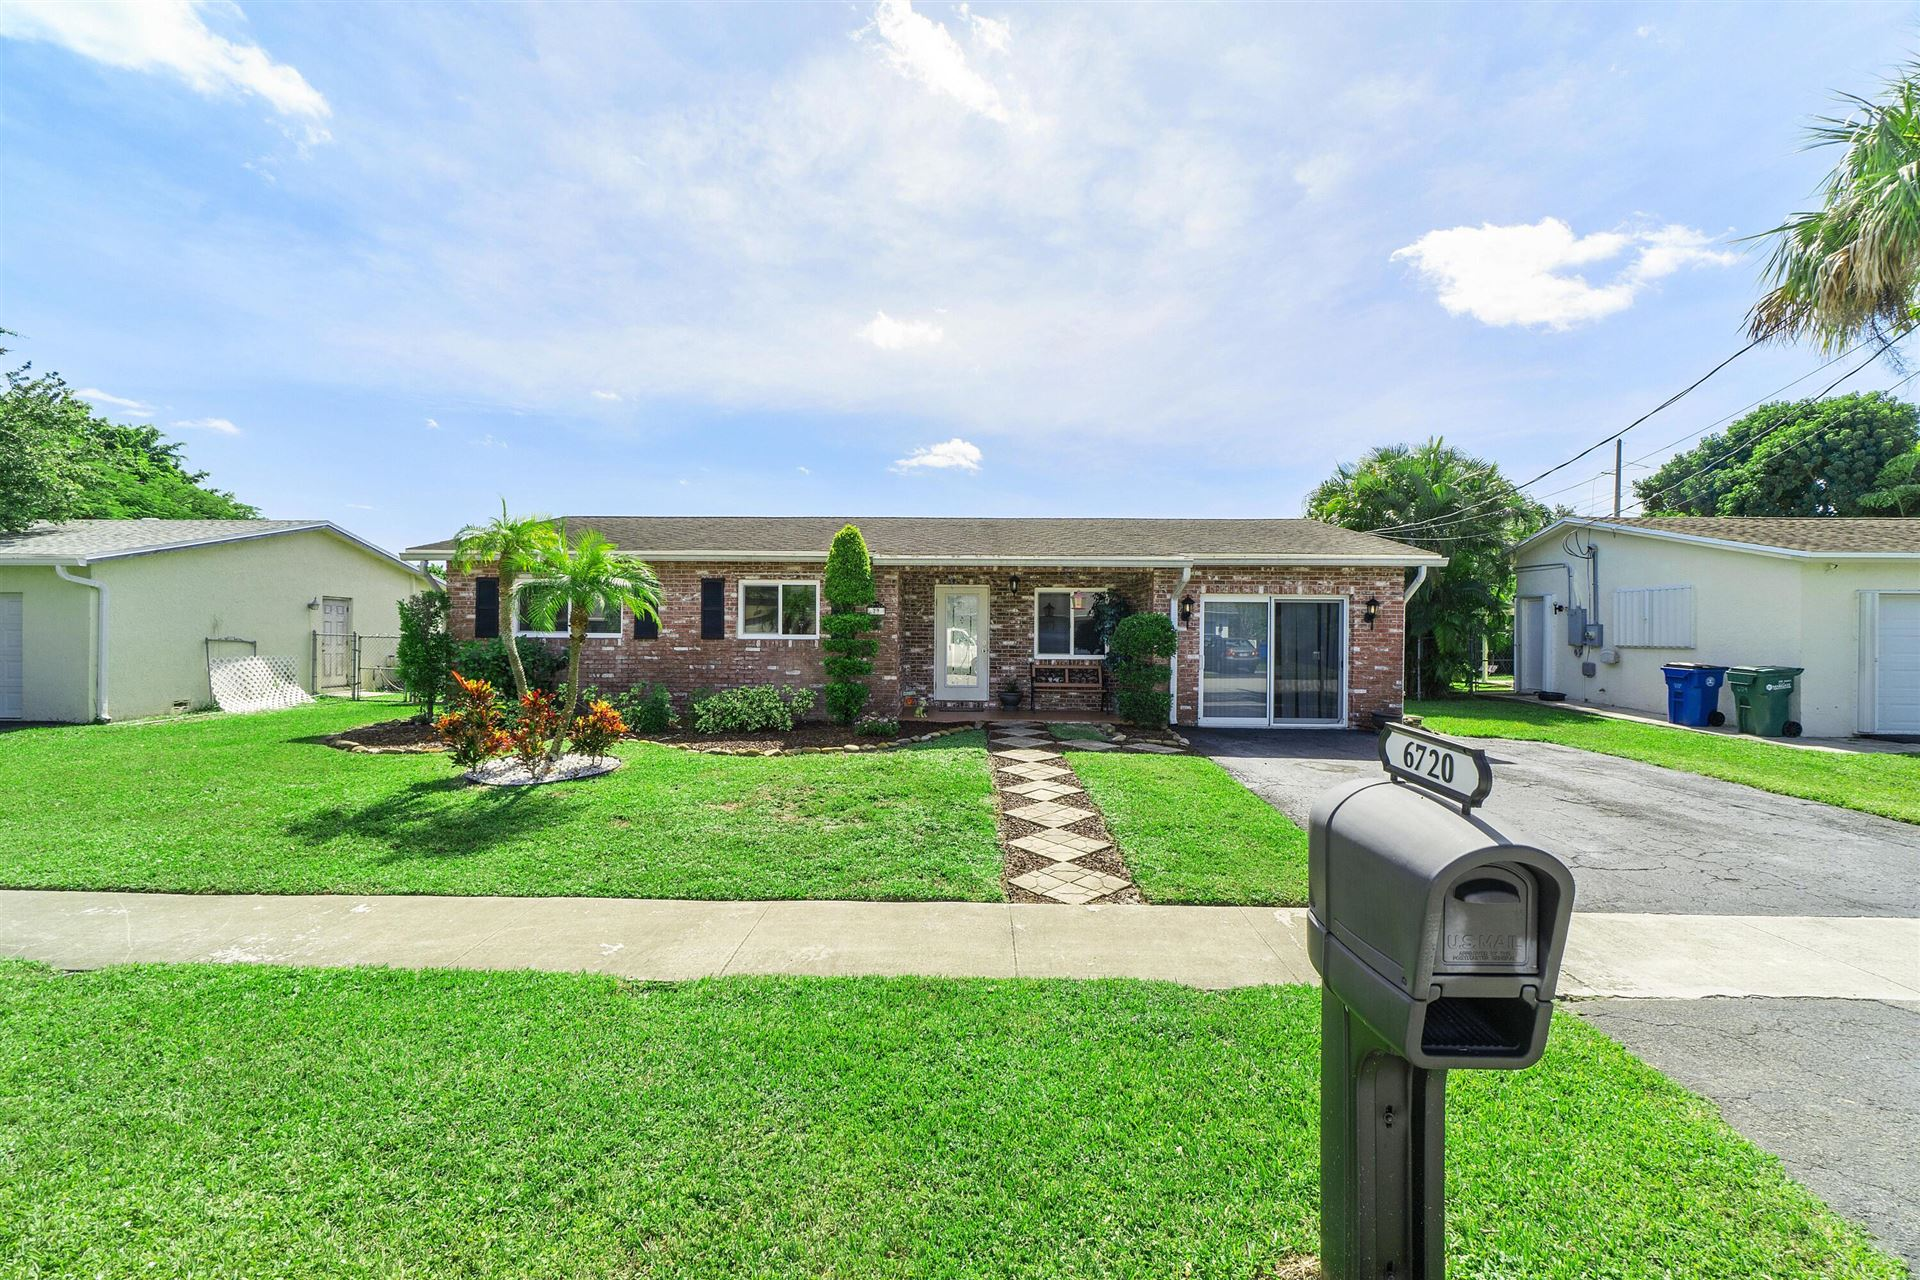 Photo of 6720 NW 27th Street, Margate, FL 33063 (MLS # RX-10747962)